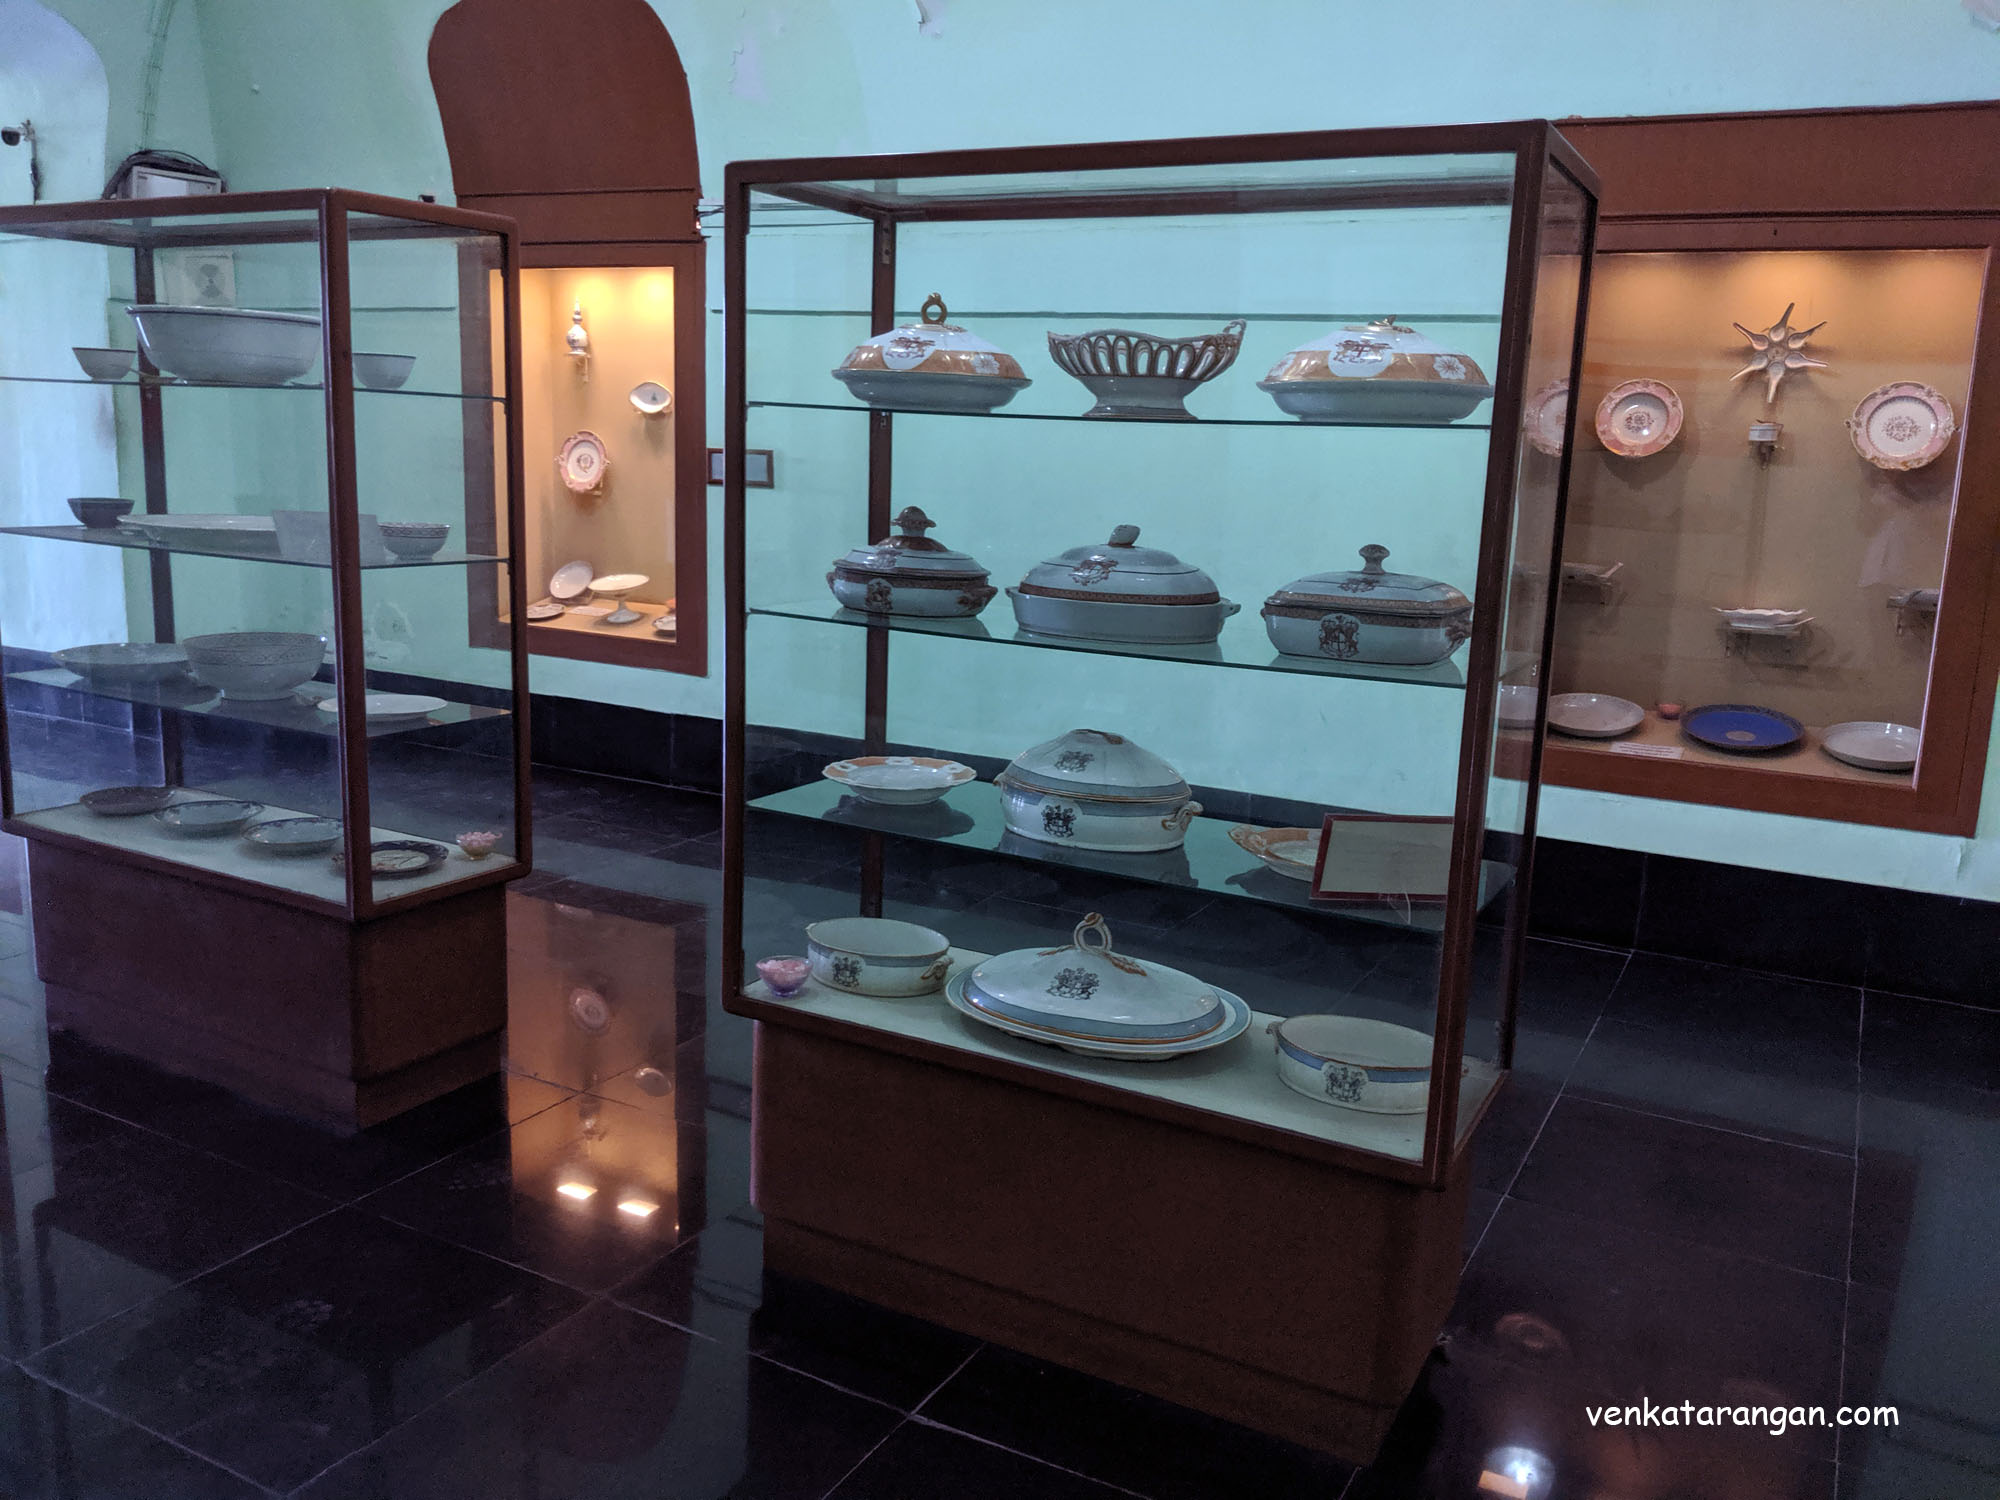 Porcelains from various royal households who lived in the Madras state